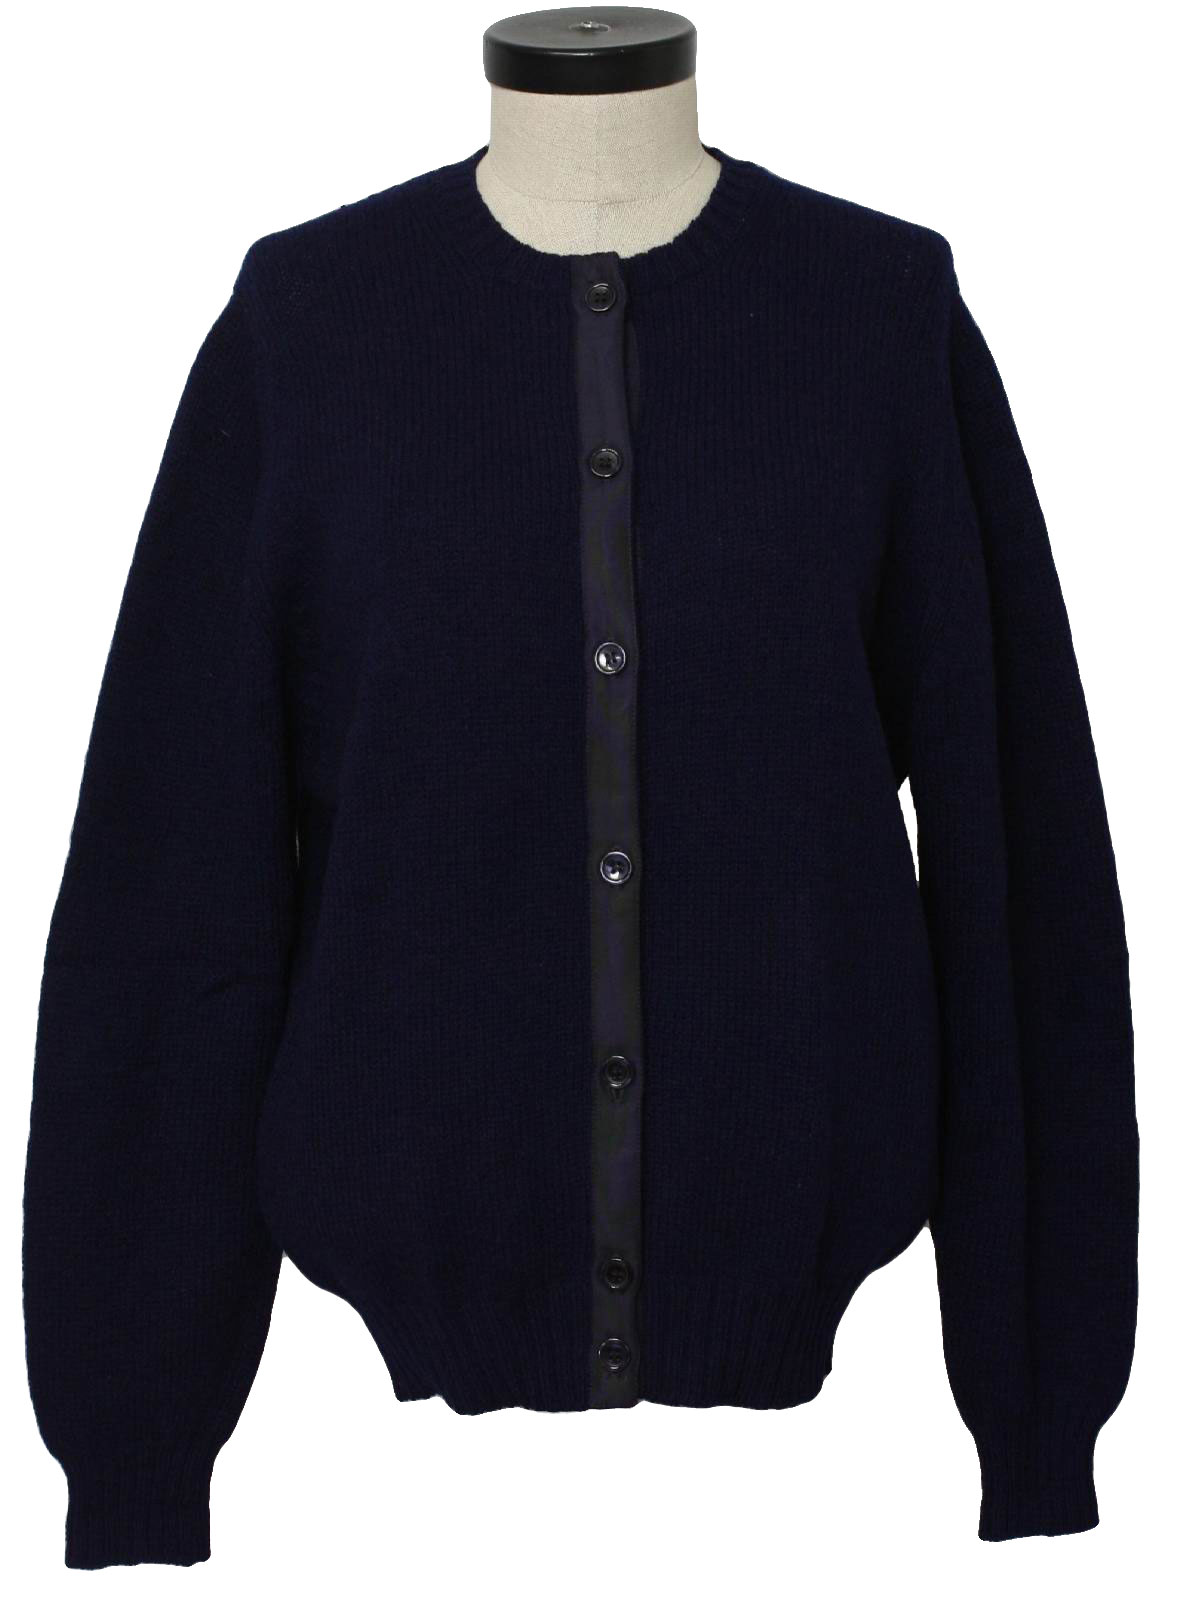 Sweater With Elbow Patches Womens